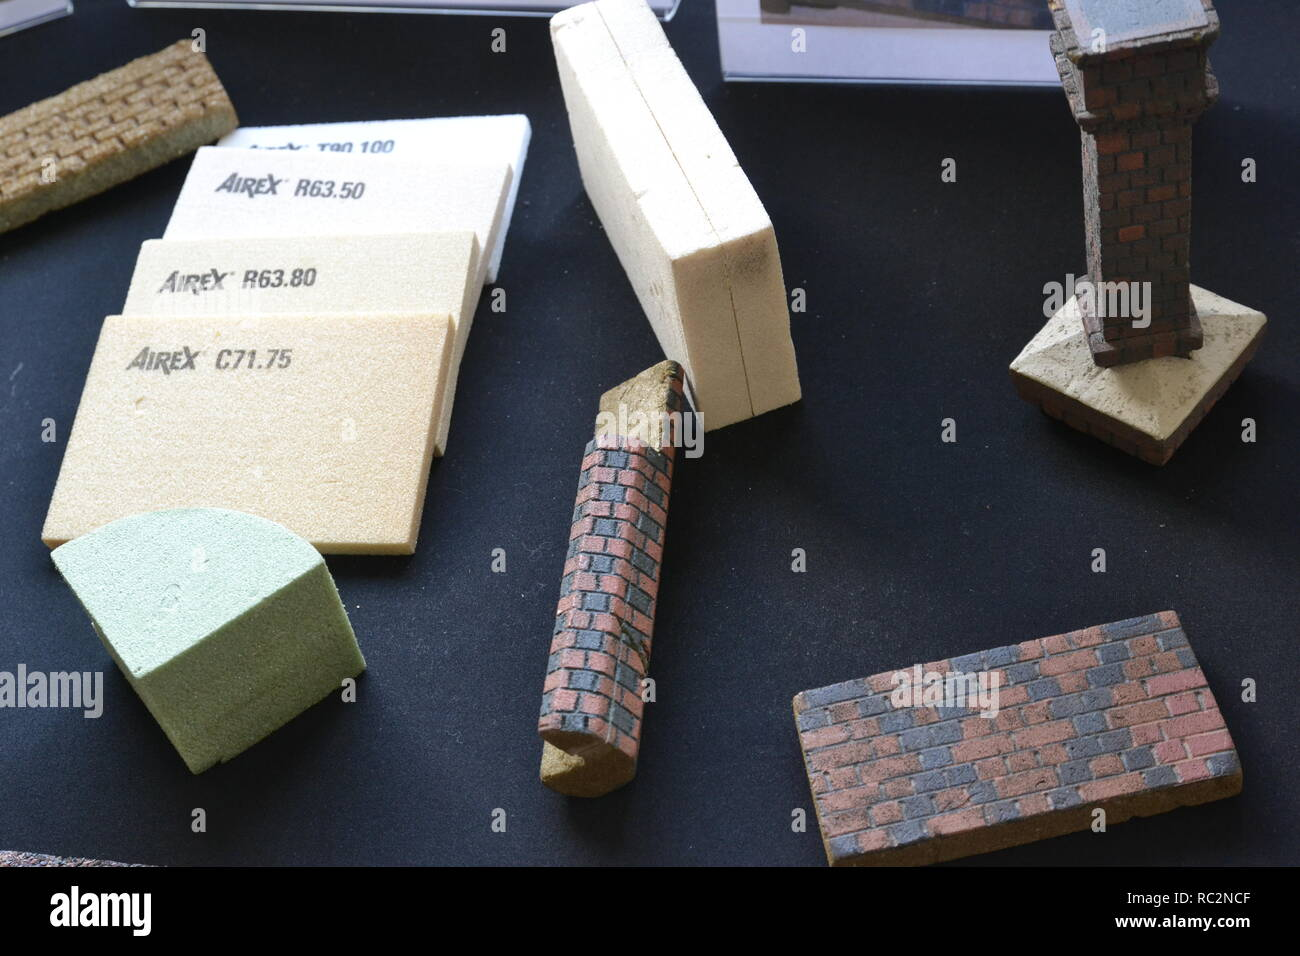 Modelling materials on display at Beaconscot Model Village, Beaconsfield, Buckinghamshire, UK - Stock Image